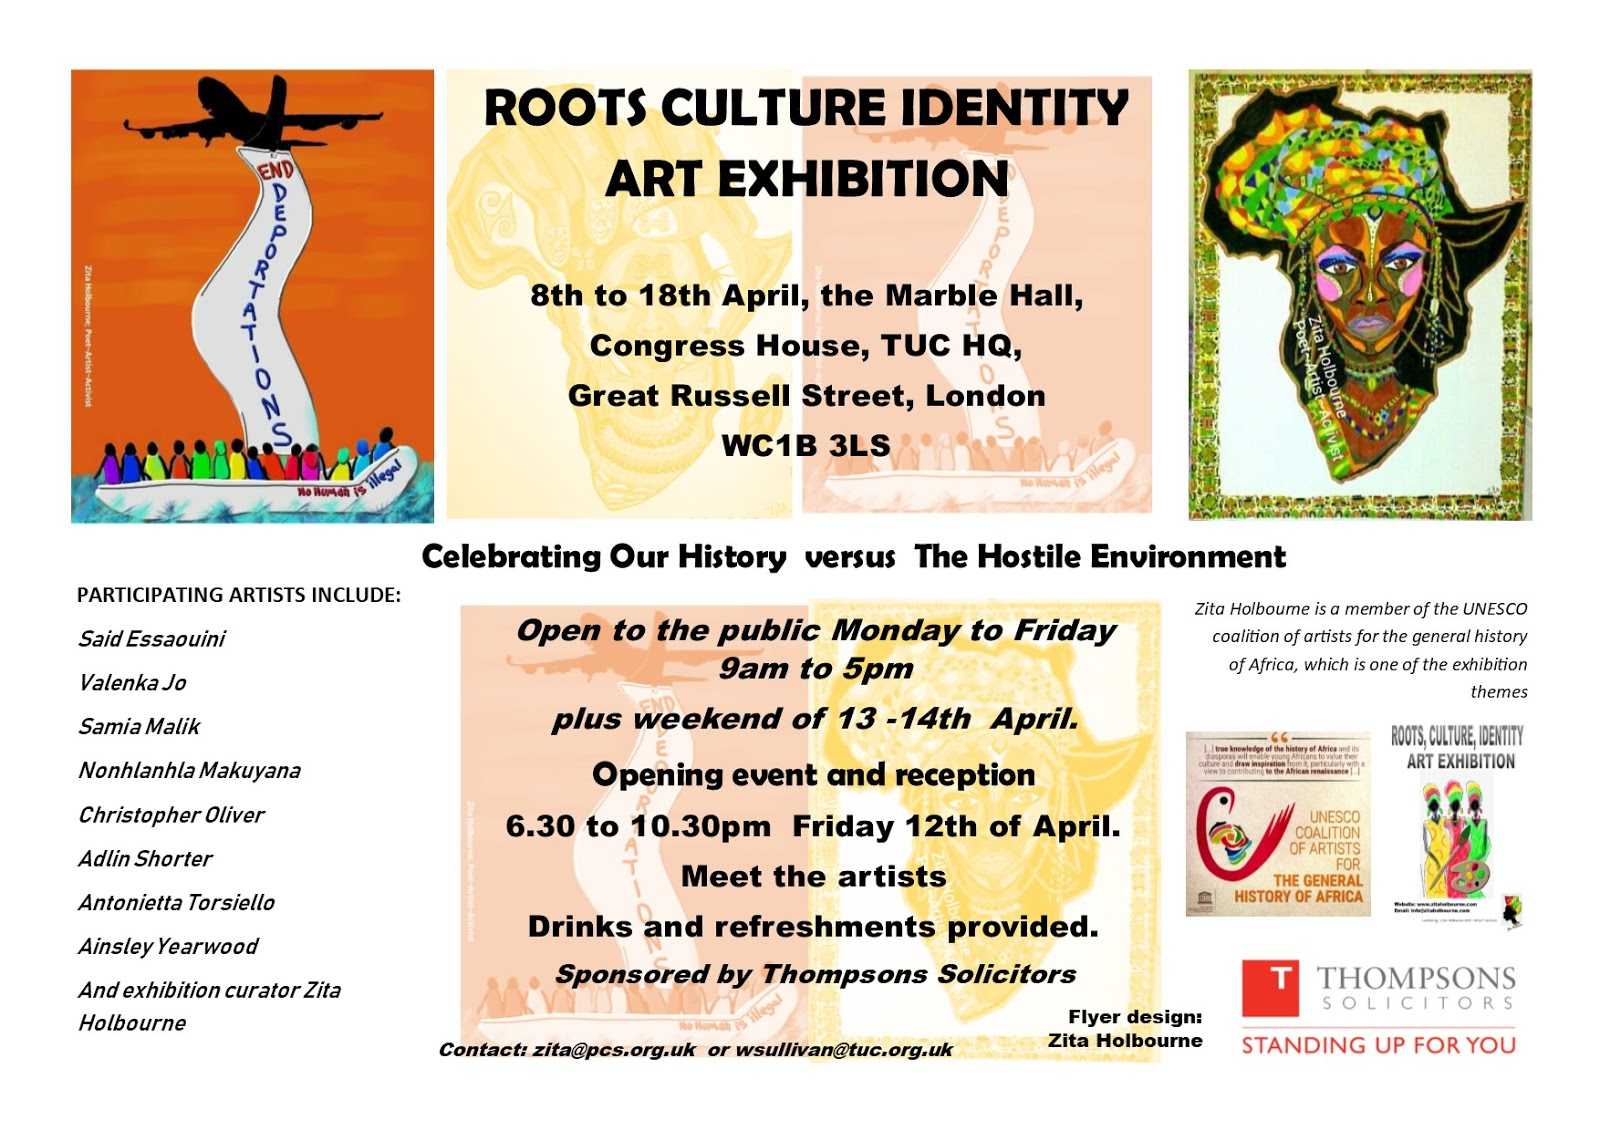 286933dd6 ROOTS CULTURE IDENTITY ART EXHIBITION - CELEBRATING OUR HISTORY VERSUS THE  HOSTILE ENVIRONMENT 8 TO 18 APRIL 2019